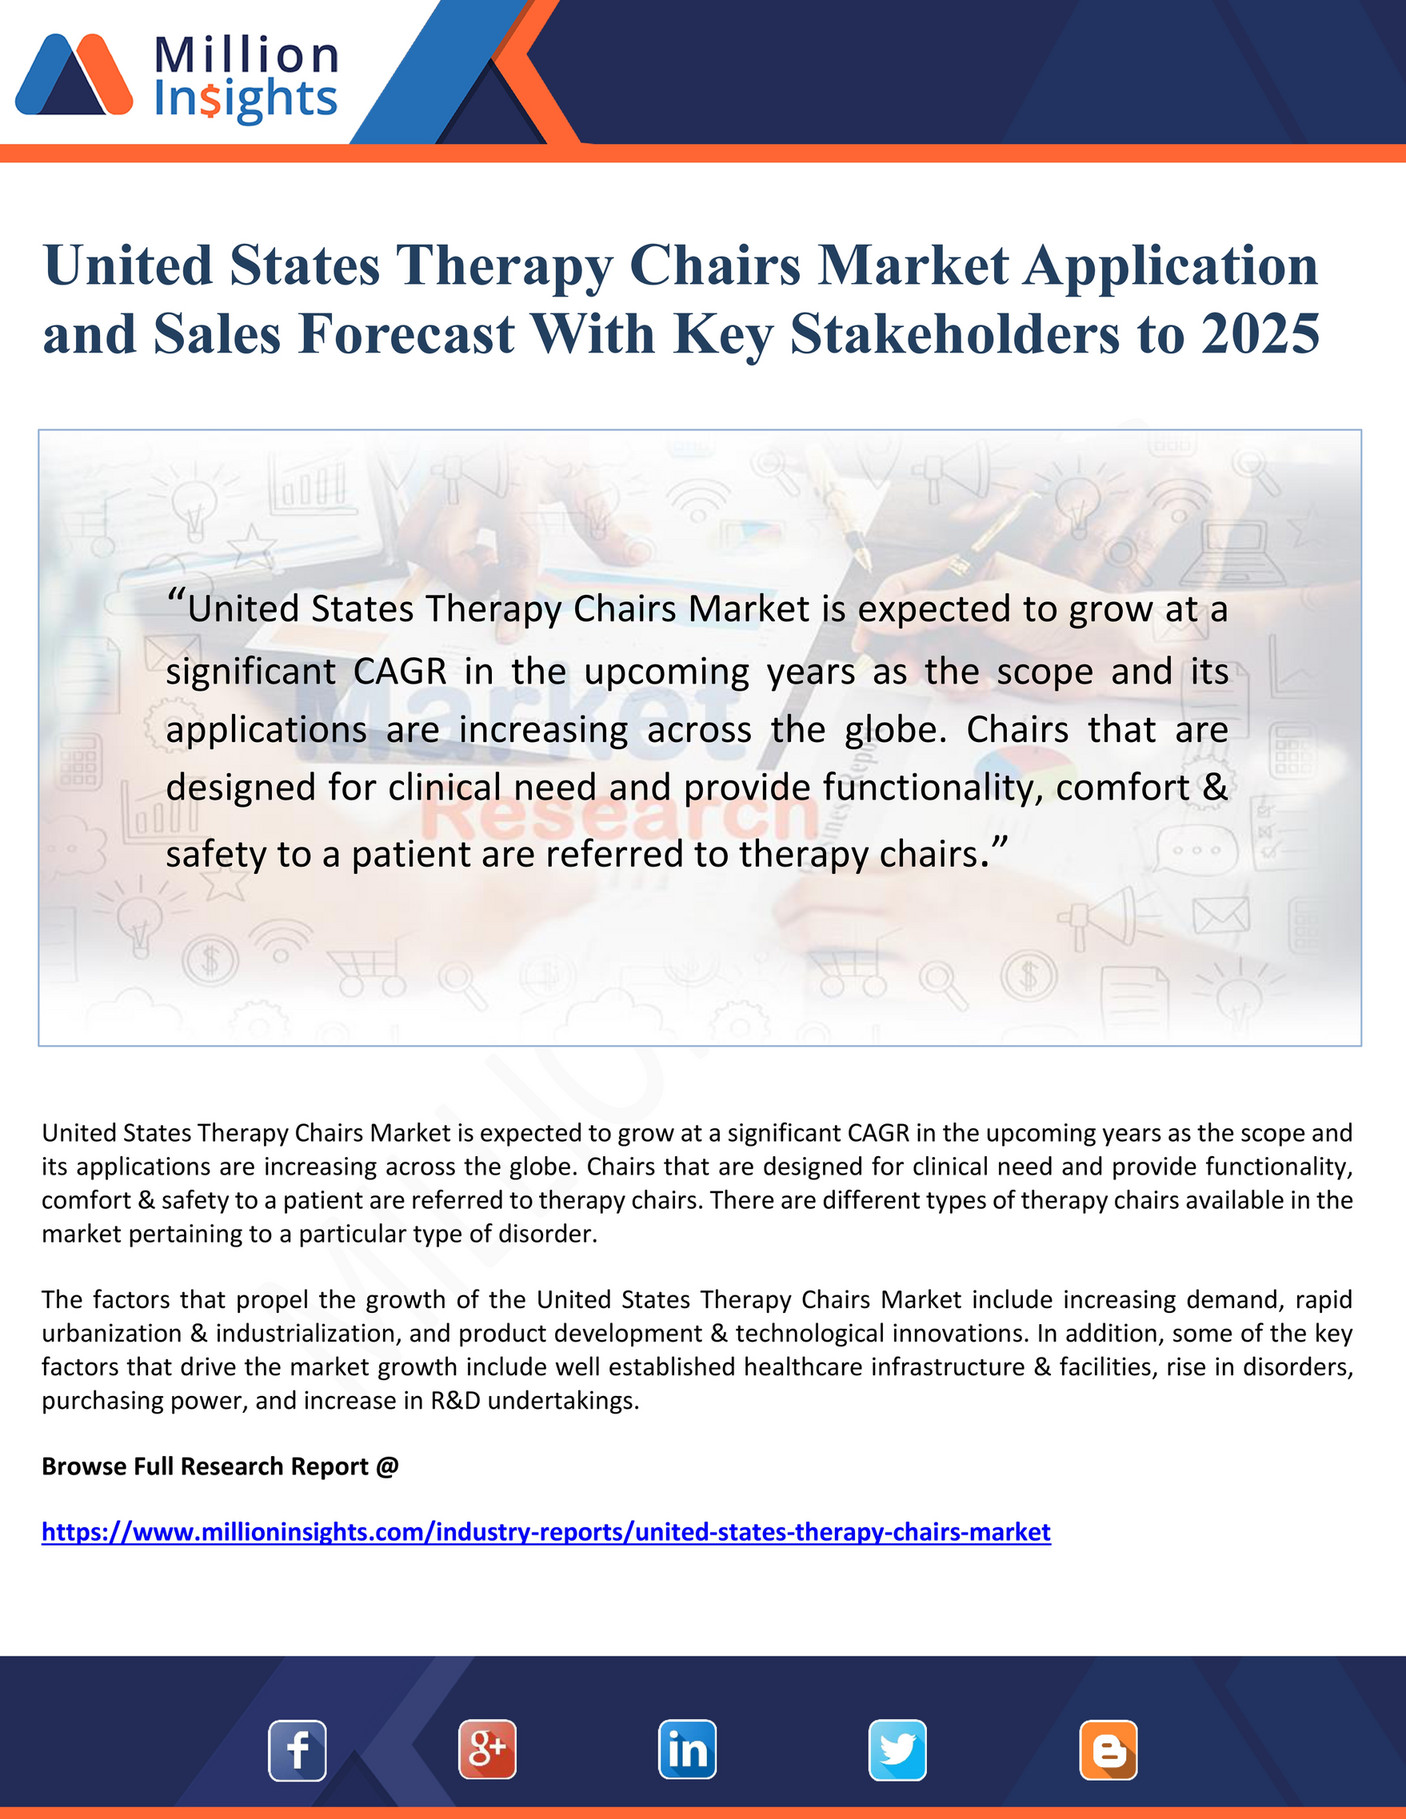 My publications - United States Therapy Chairs Market Application